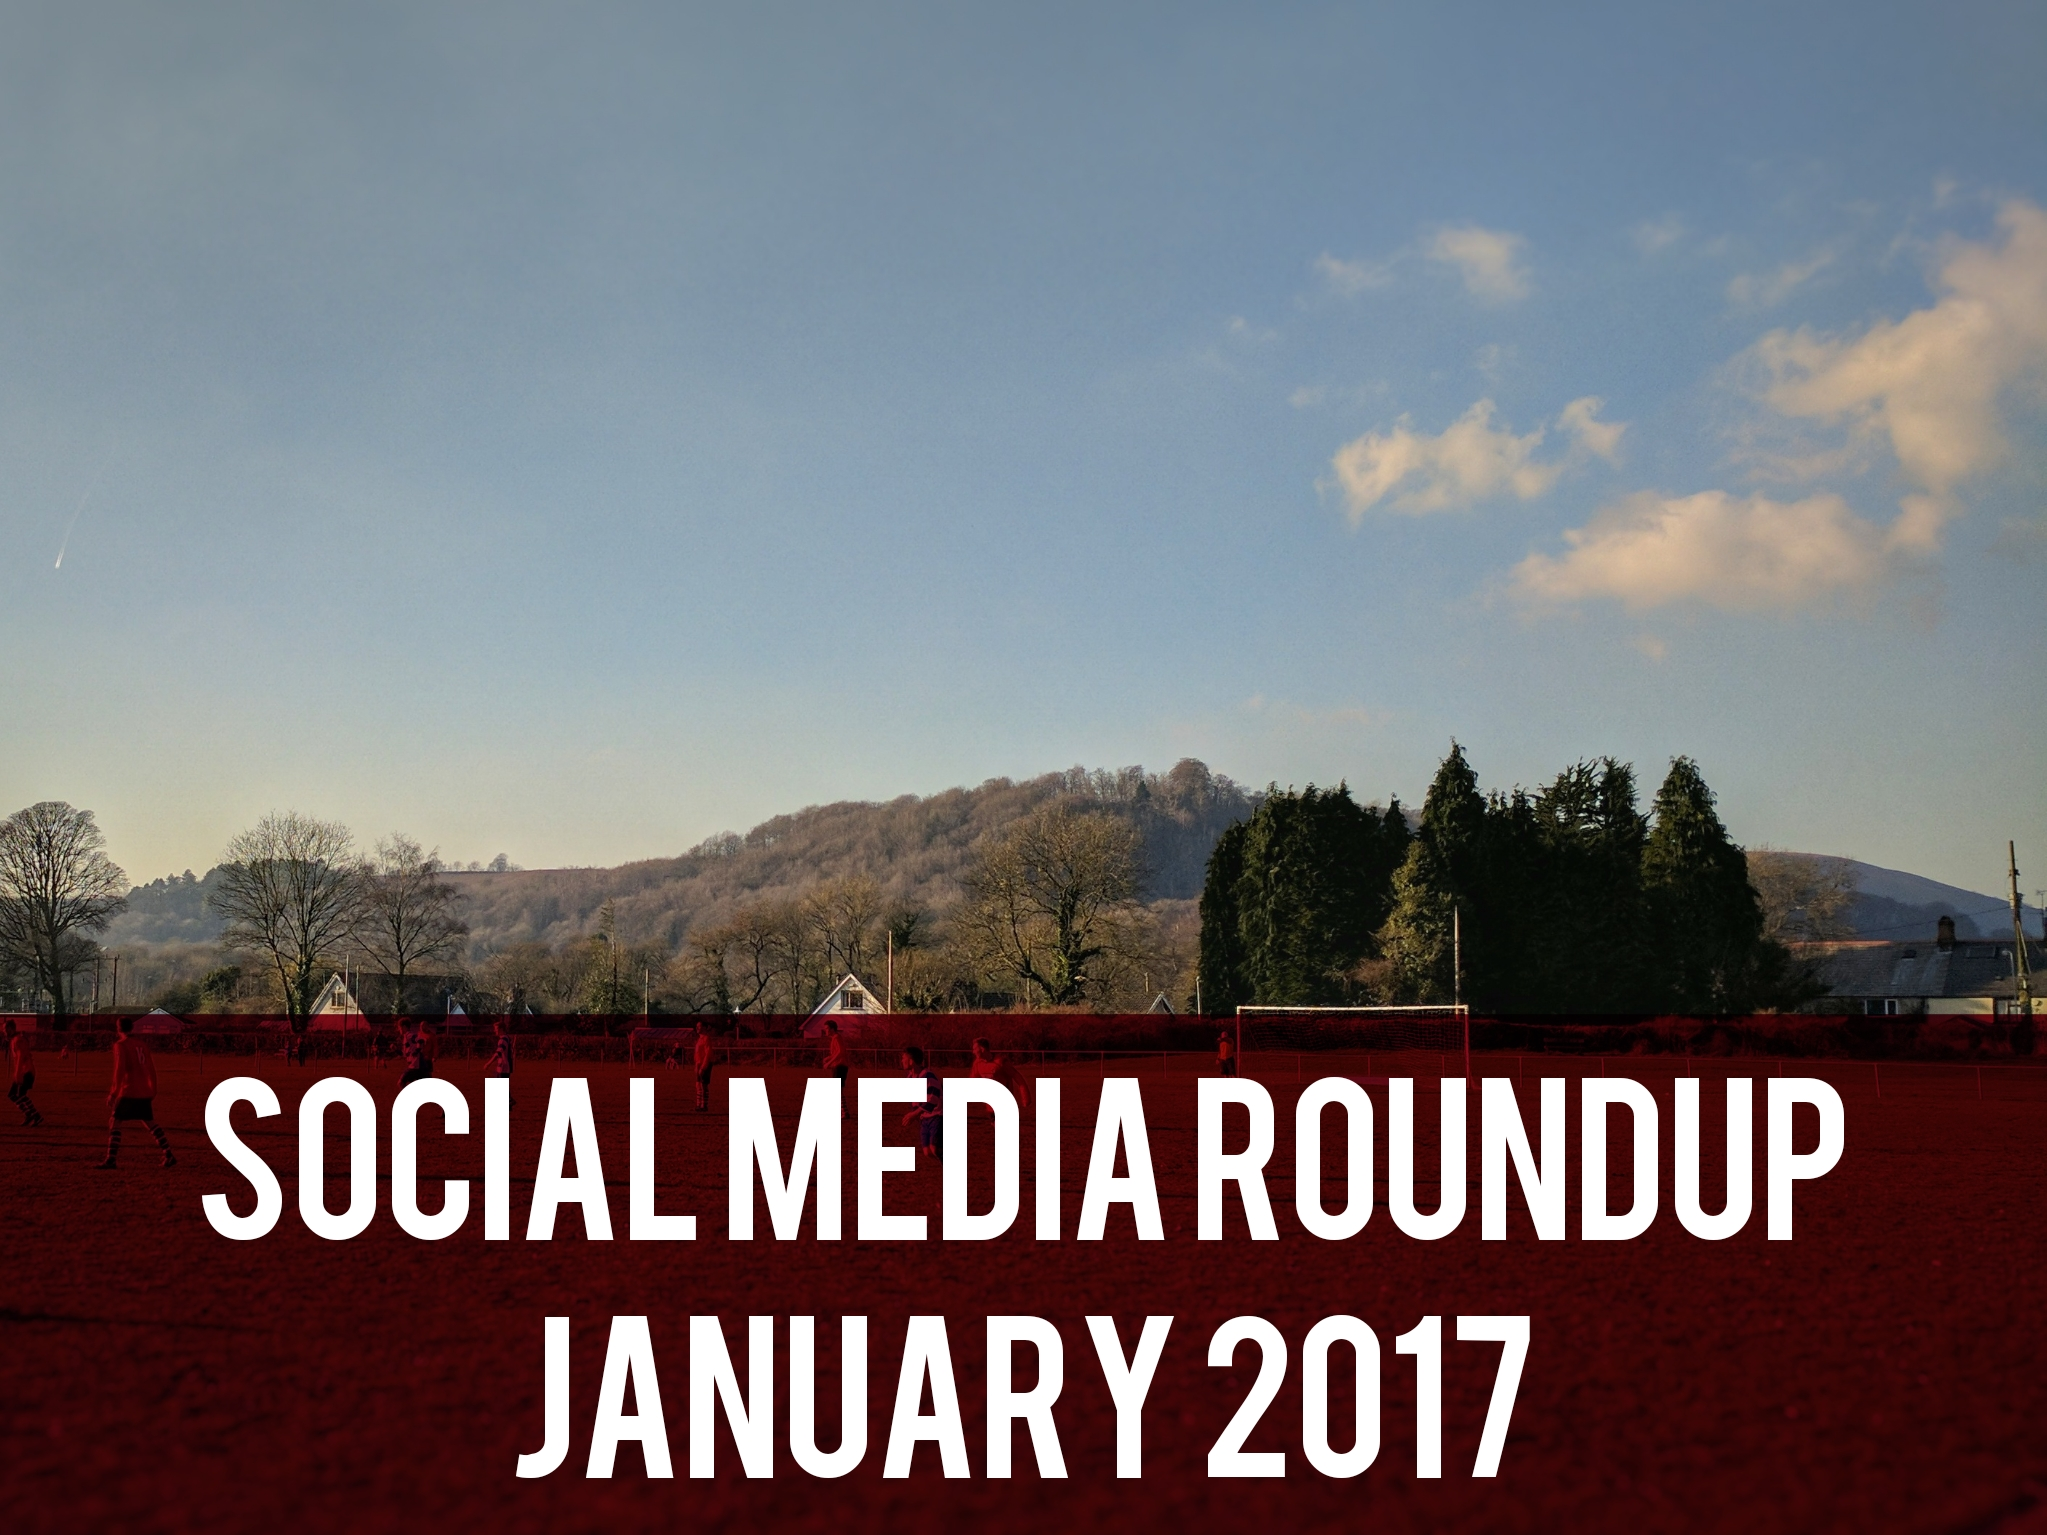 Social media roundup January 2017 header